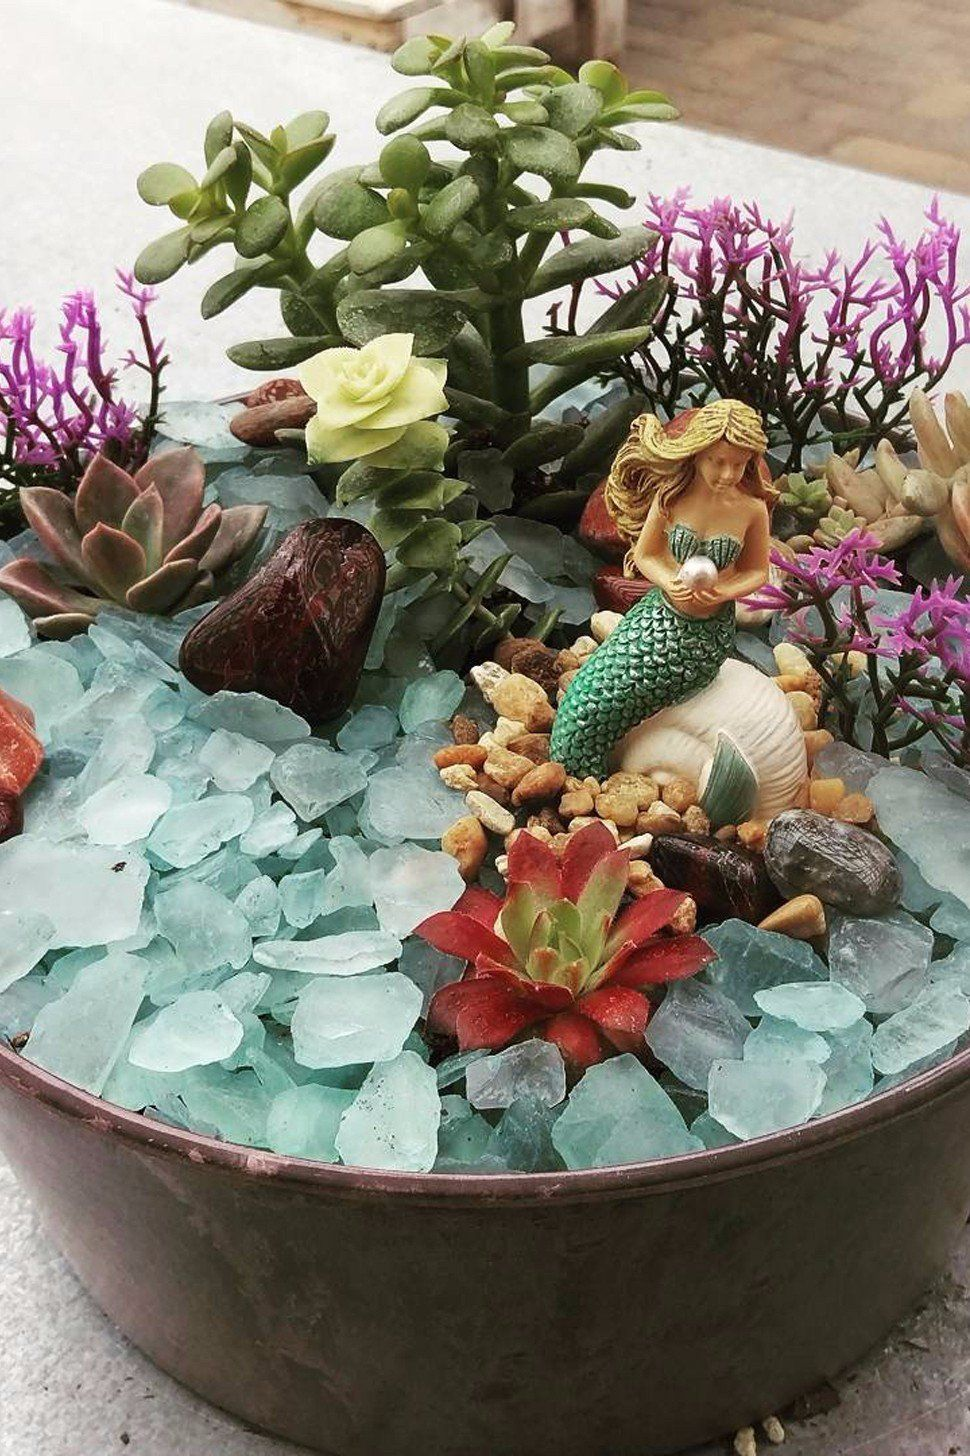 You'll Want These DIY Mermaid Gardens To Be A Part Of Your